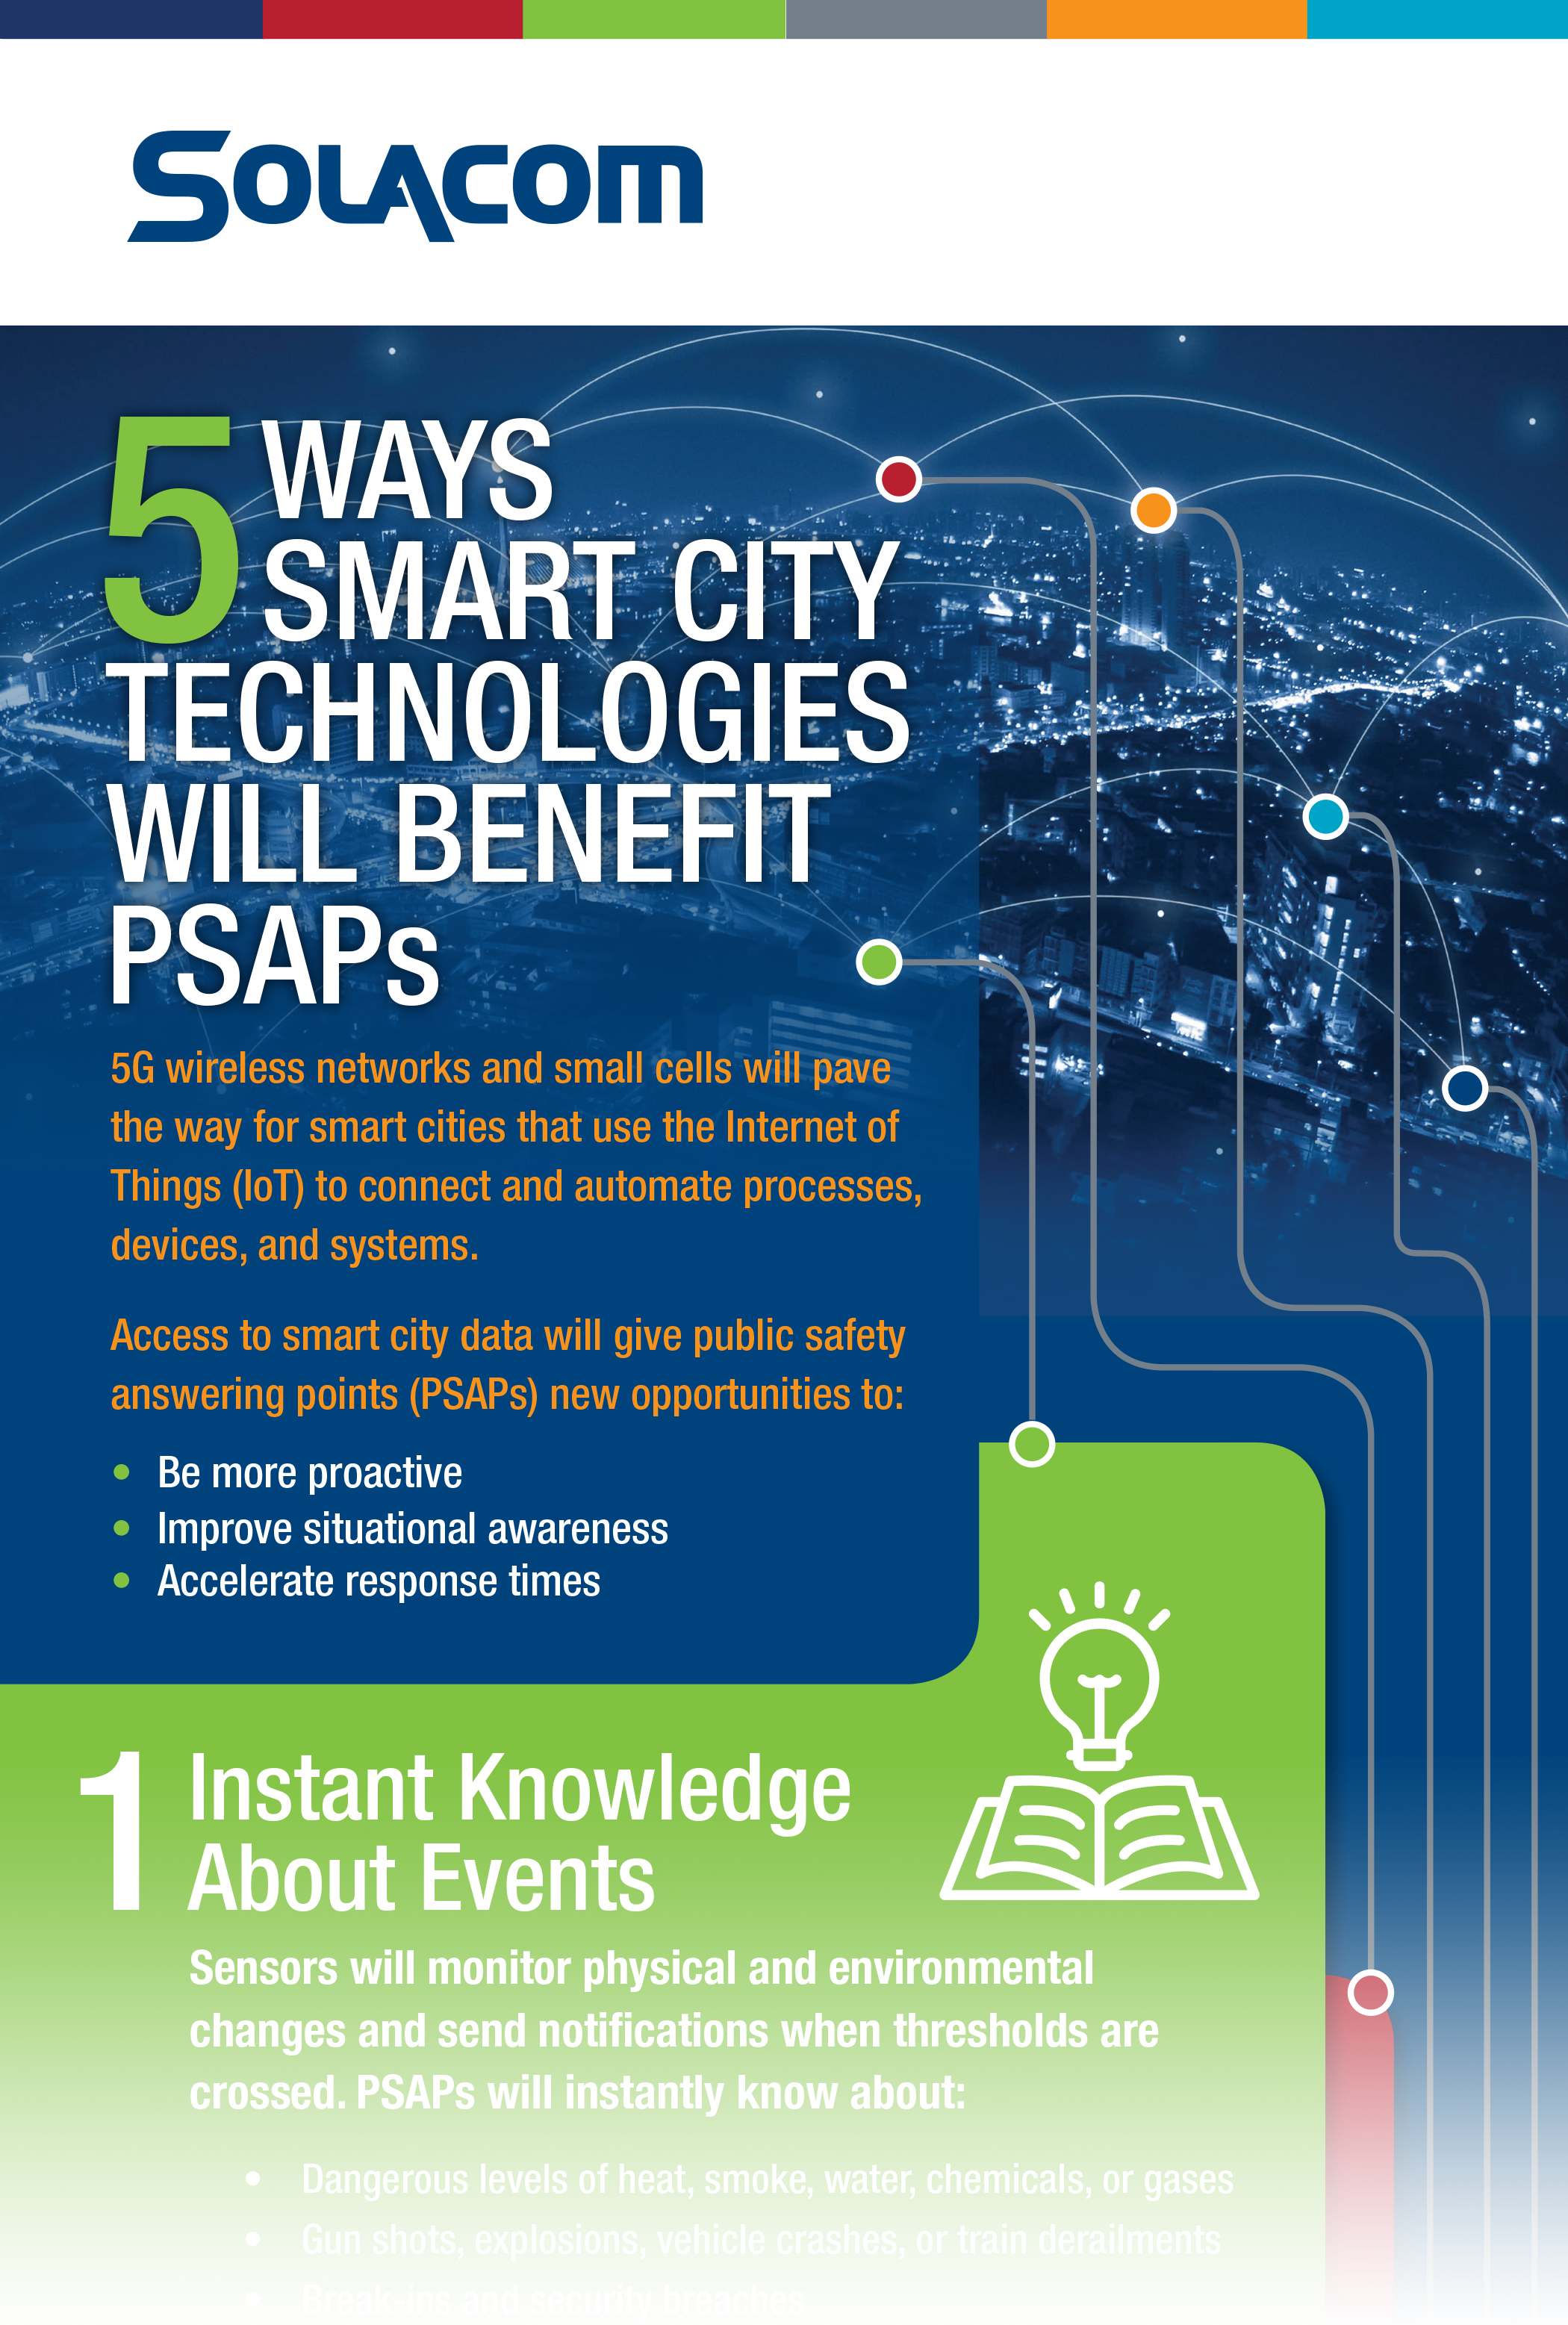 5 Ways Smart City Technologies Will Benefit PSAPs, a Solacom infographic